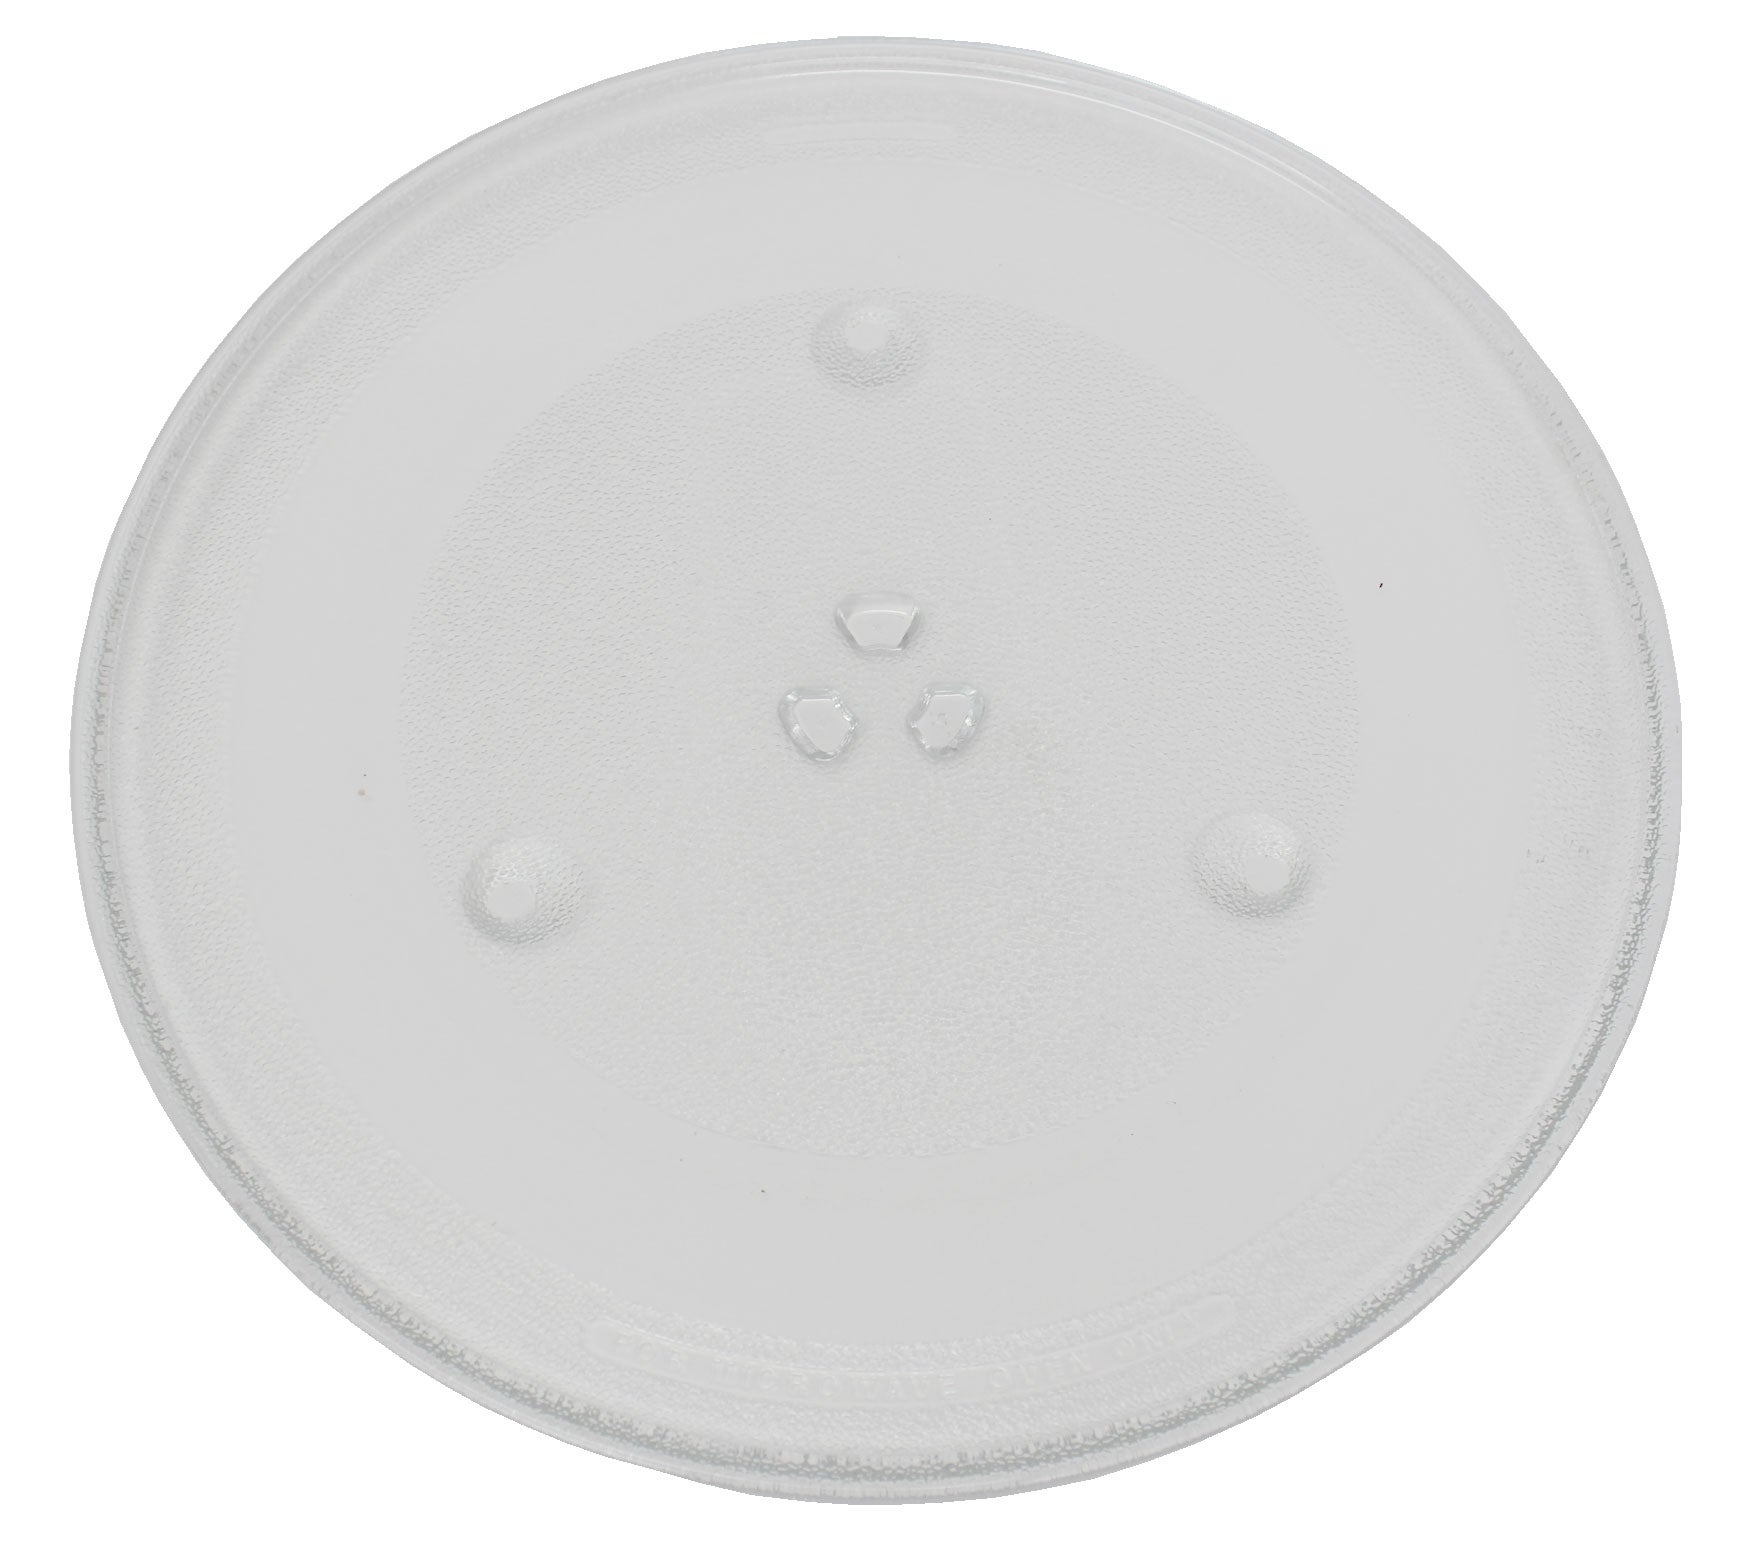 Panasonic 340mm Glass Turntable Plate For 32L Microwave Oven NN-ST series